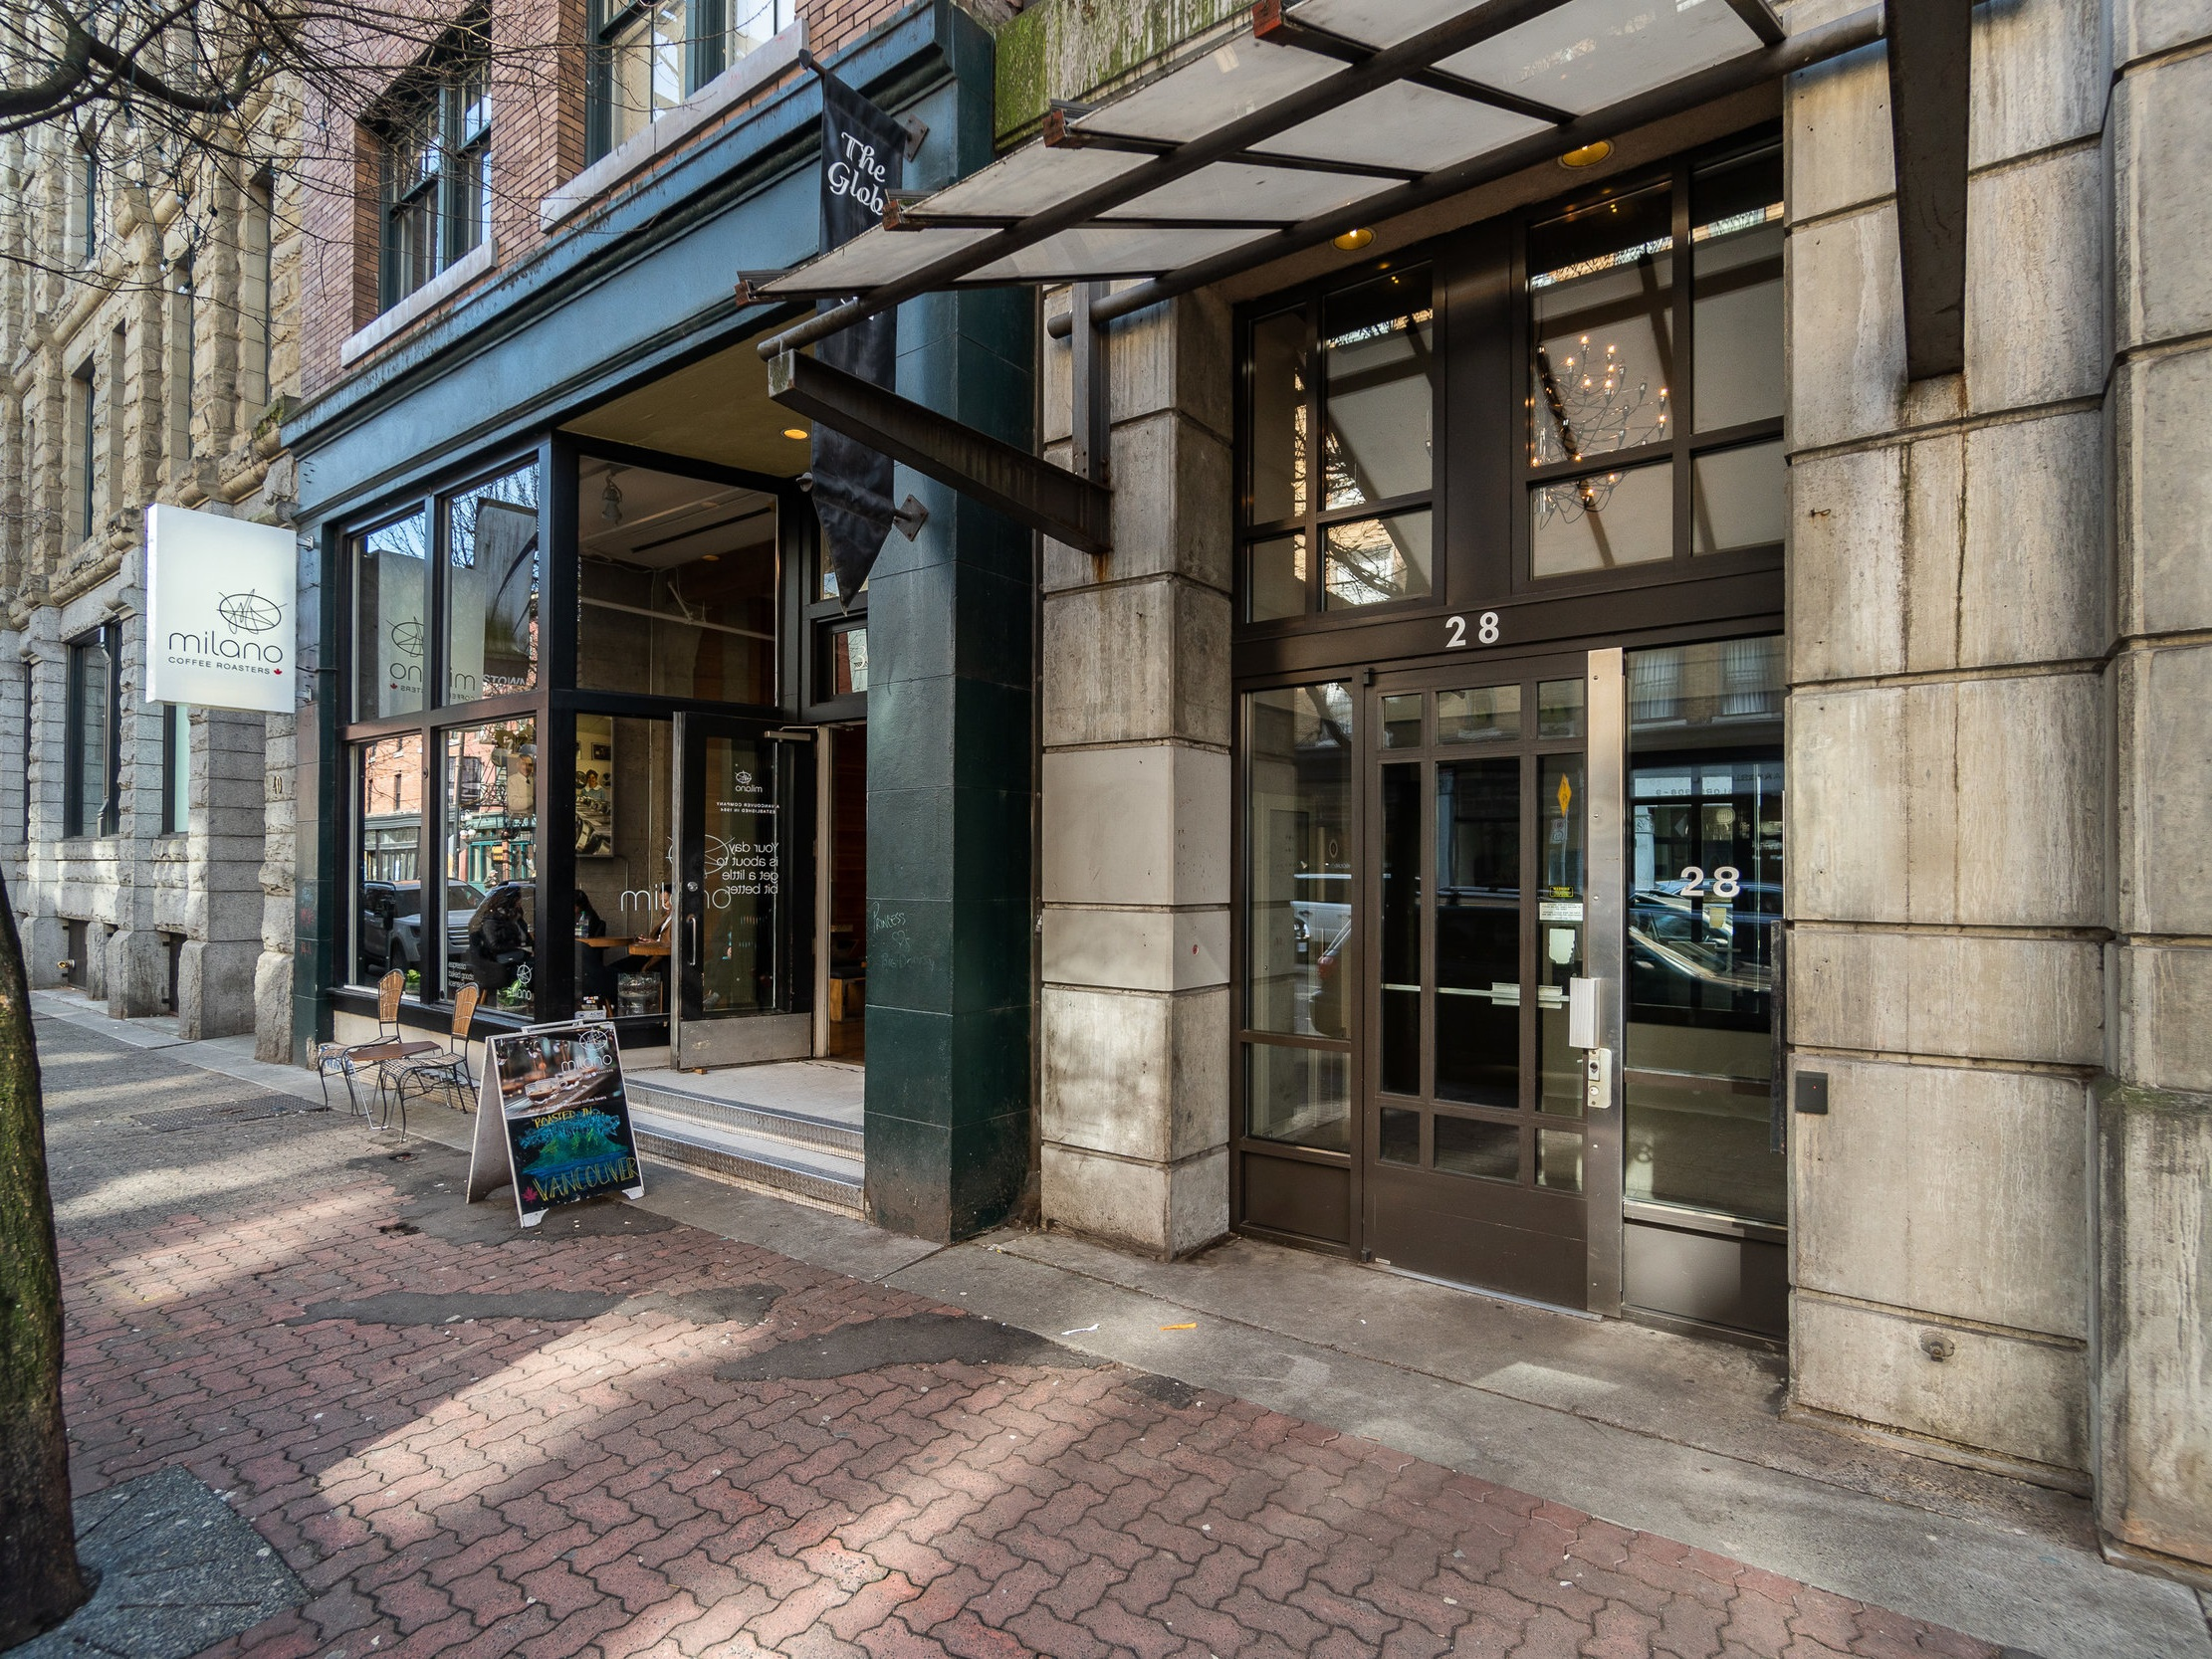 403 - 28 powell street - GASTOWN, VANCOUVER$669,000